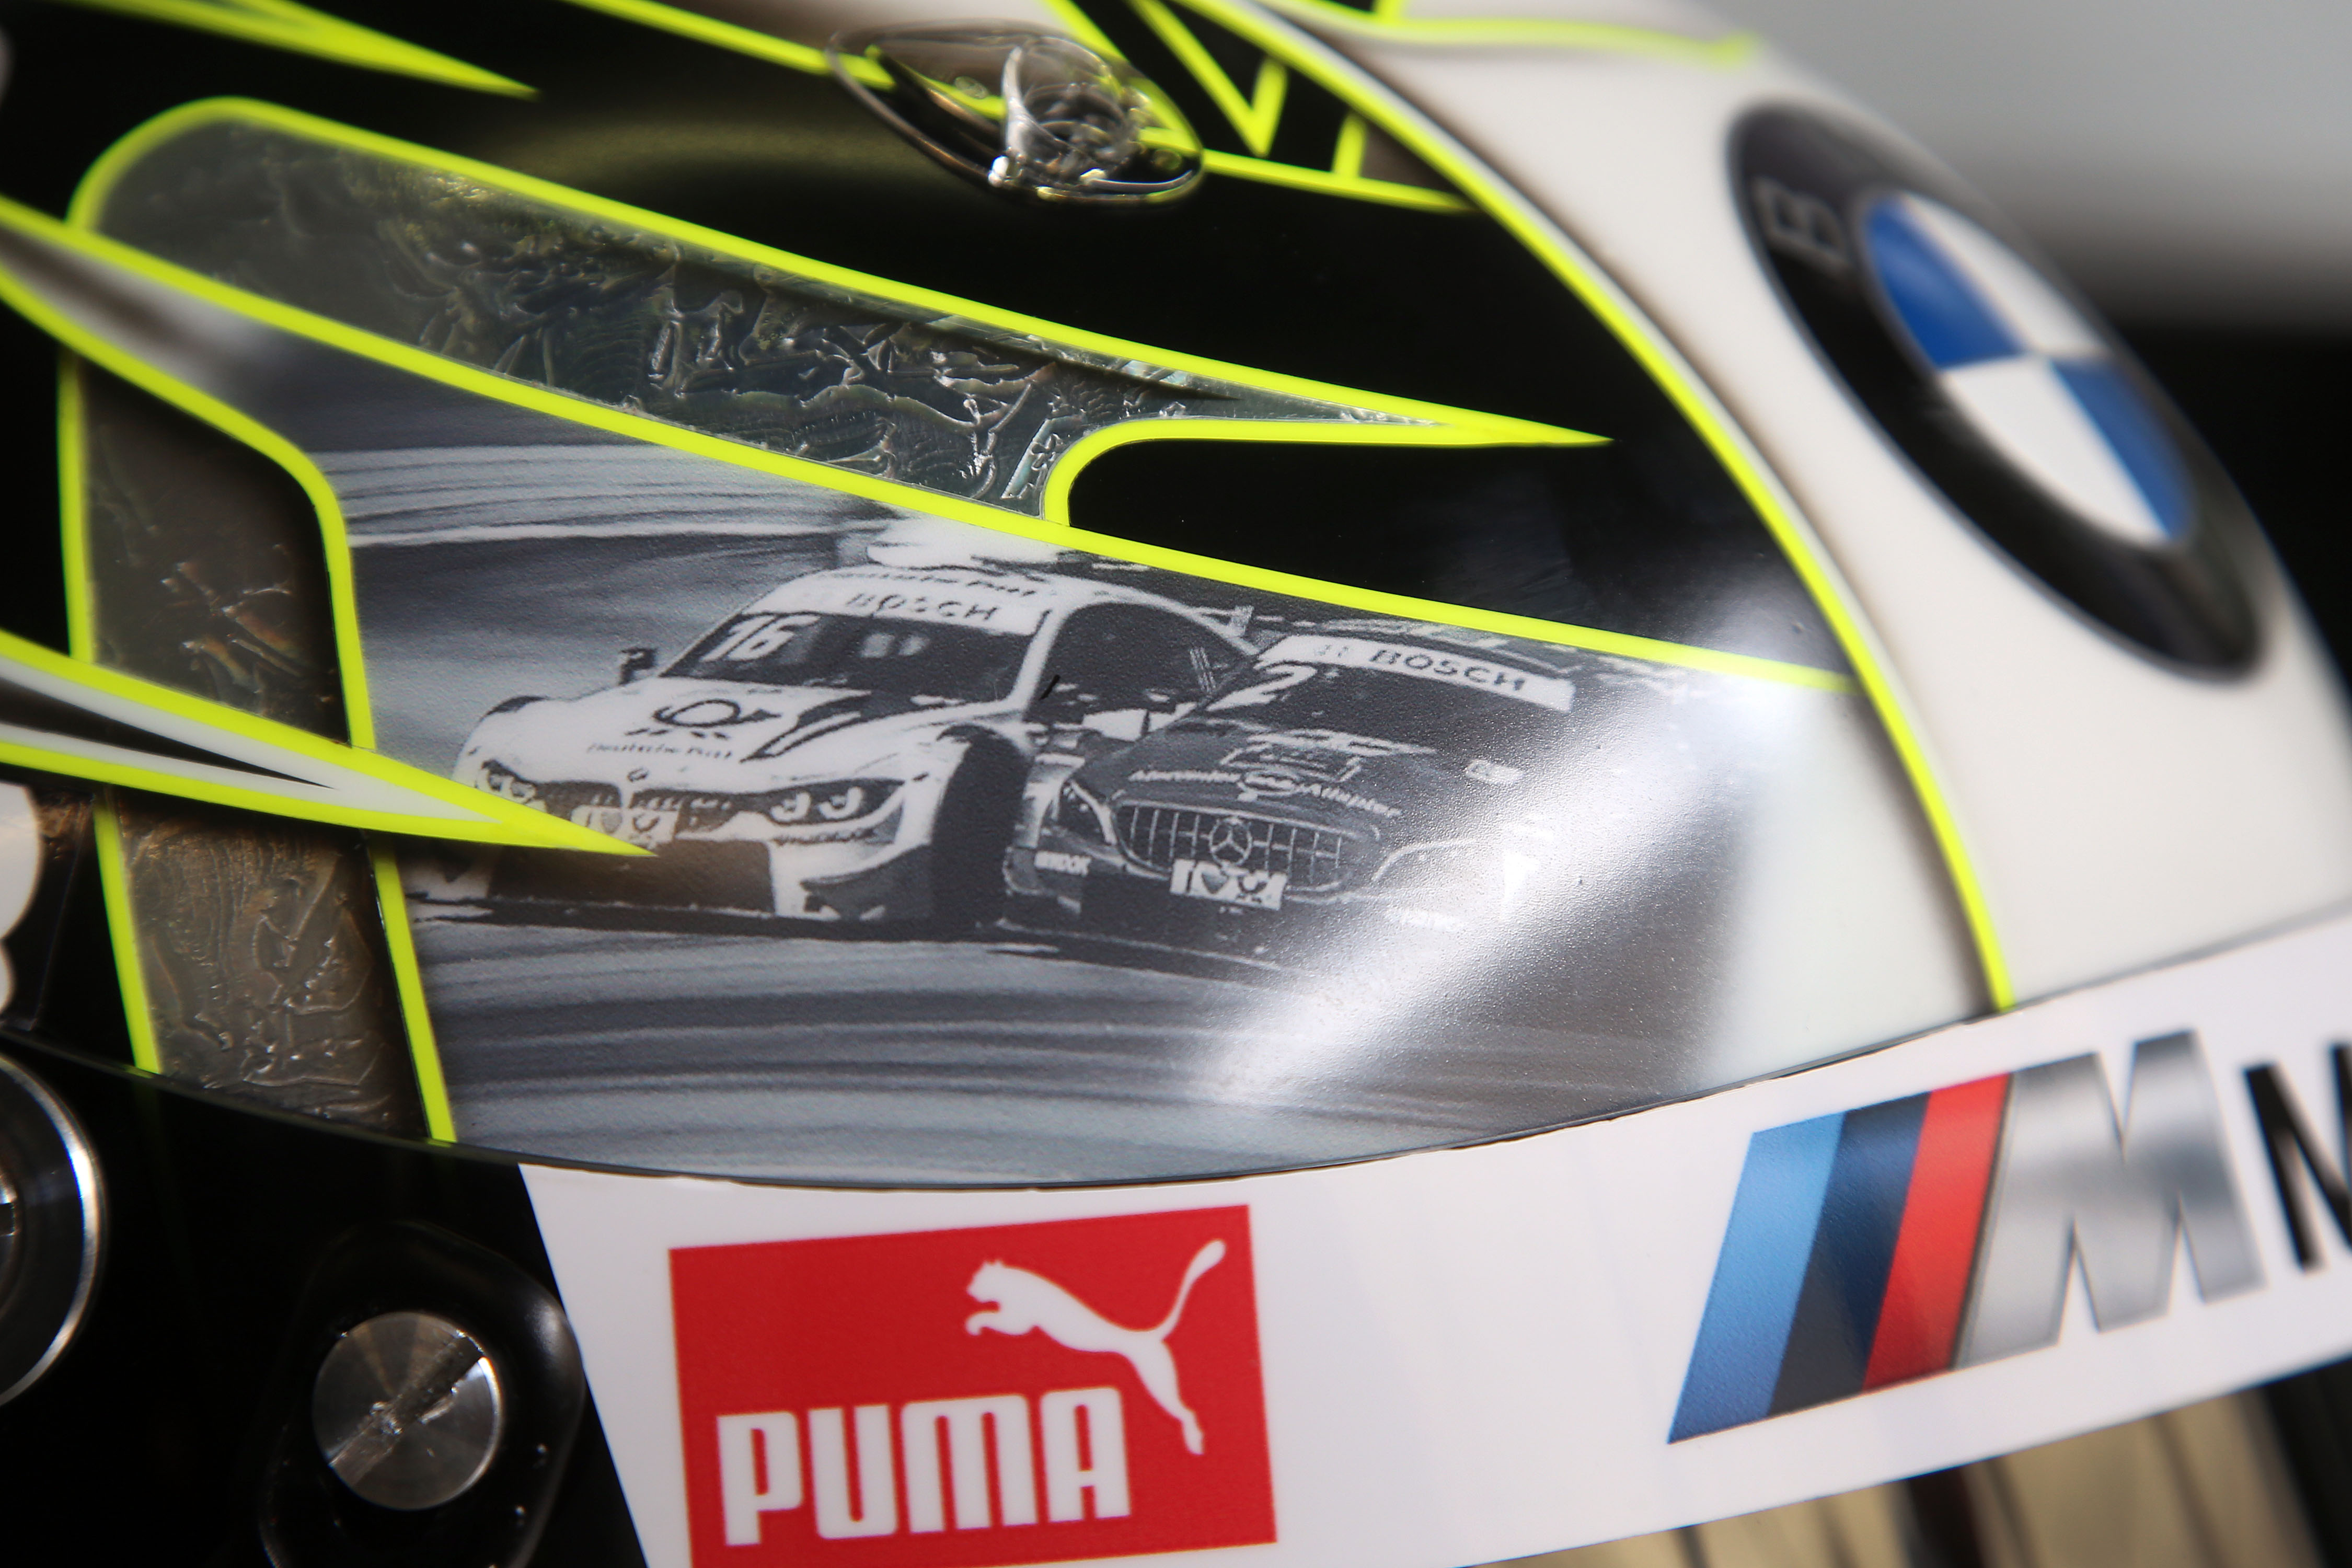 "Lausitzring (GER) 18th May 2018. BMW Motorsport, Timo Glock special edition helmet ""Hockenheim 2018"" for charity."